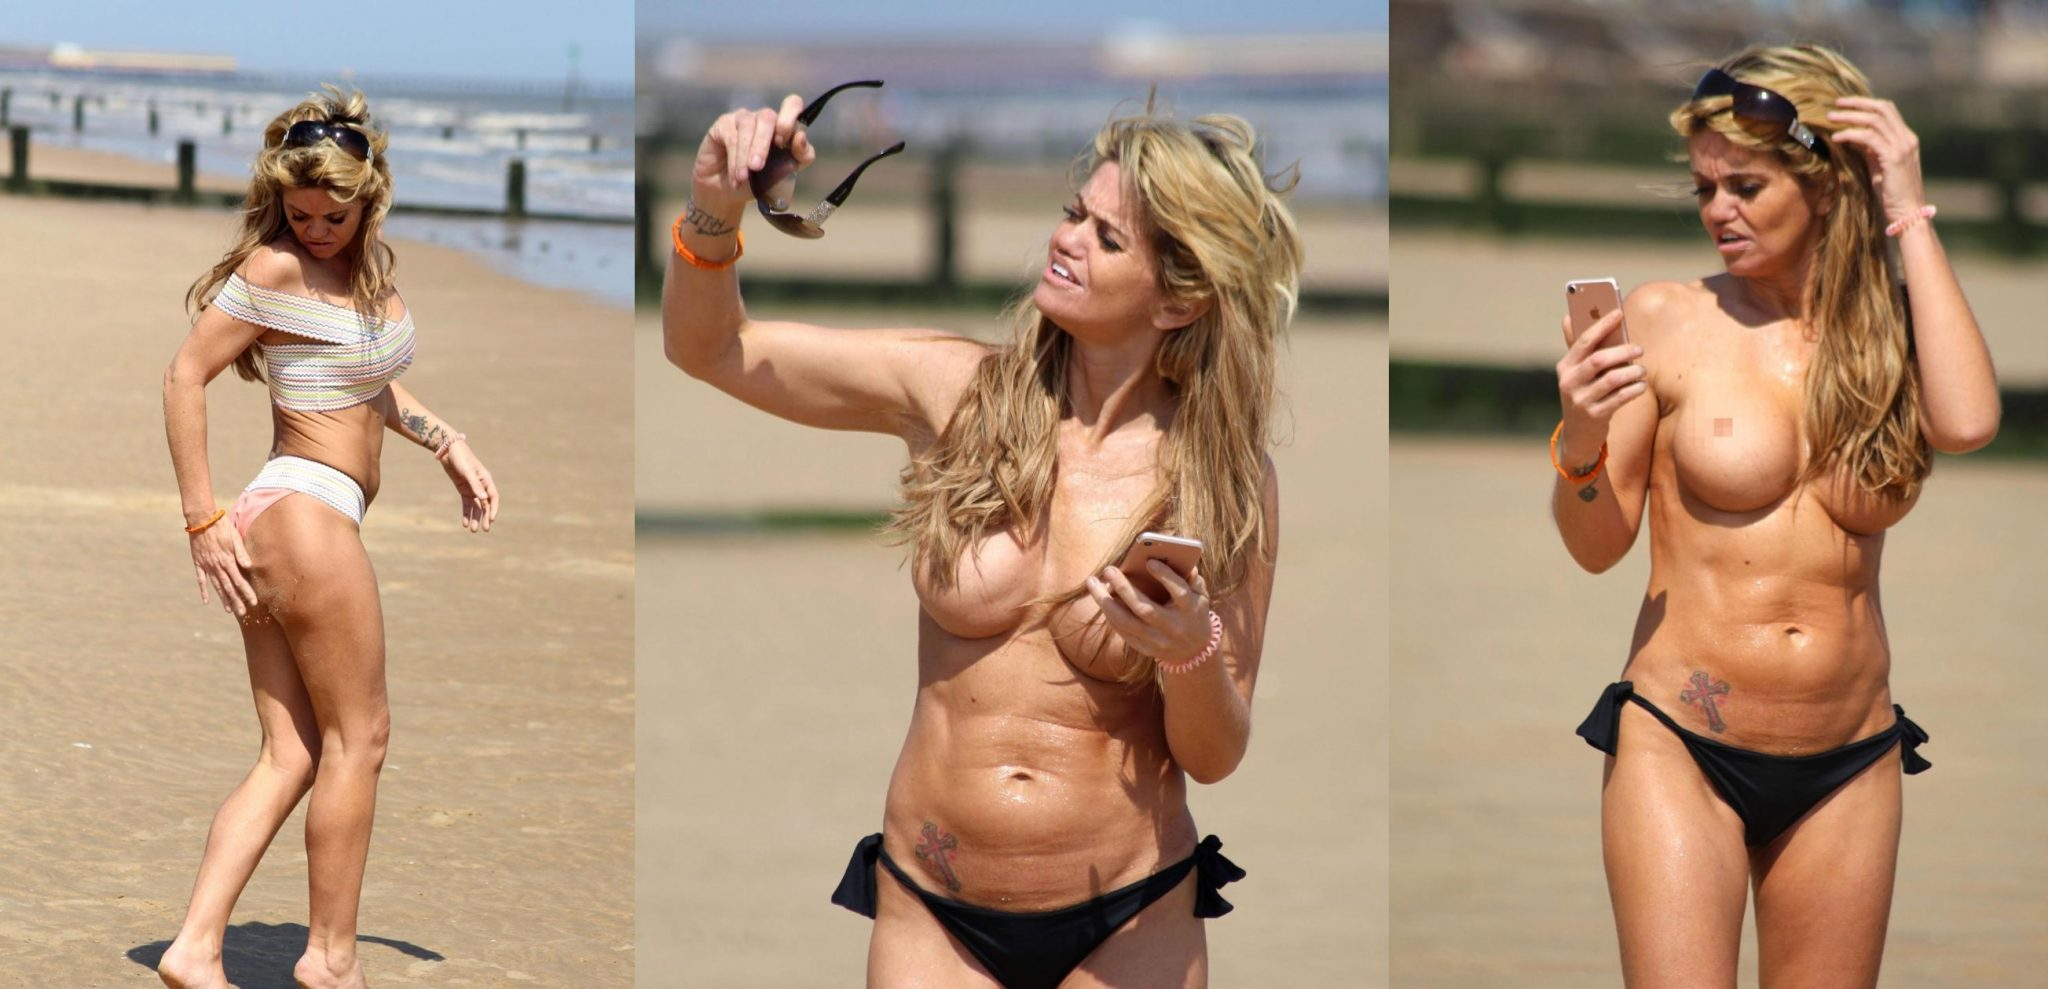 Actress Danniella Westbrook Goes Topless on Beach